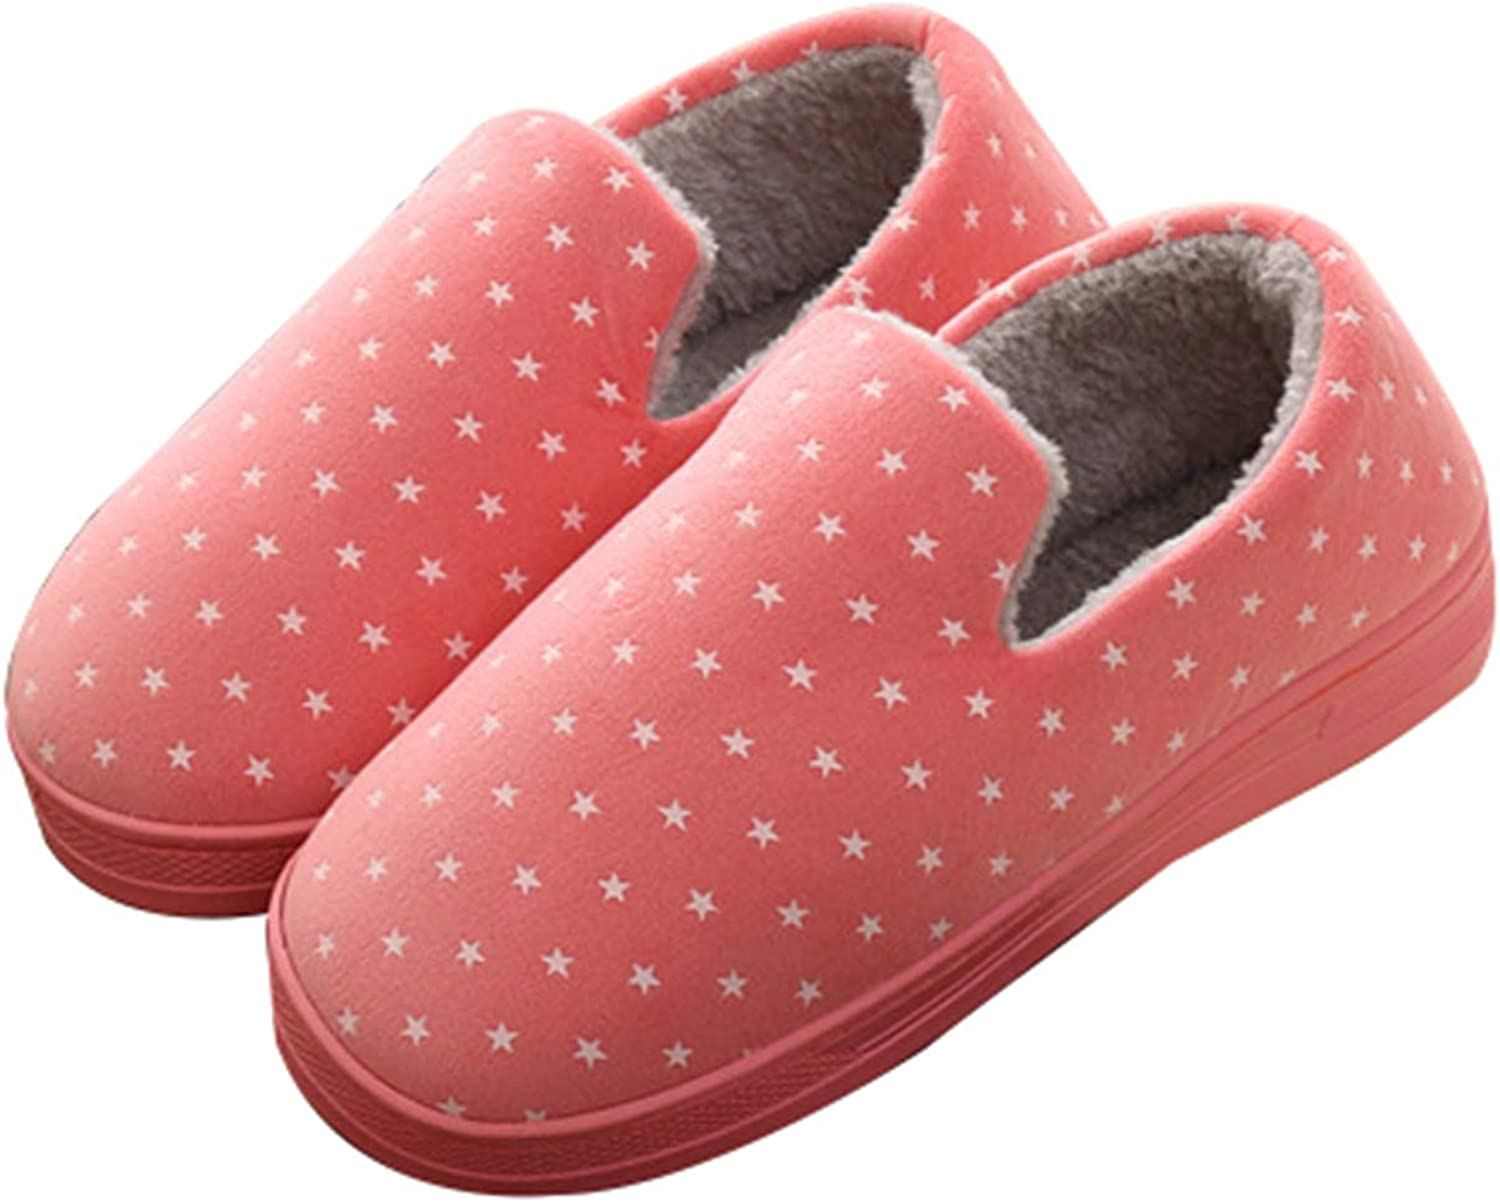 Tuoup Women's Cotton Stars Print Outdoor Indoor House Slippers